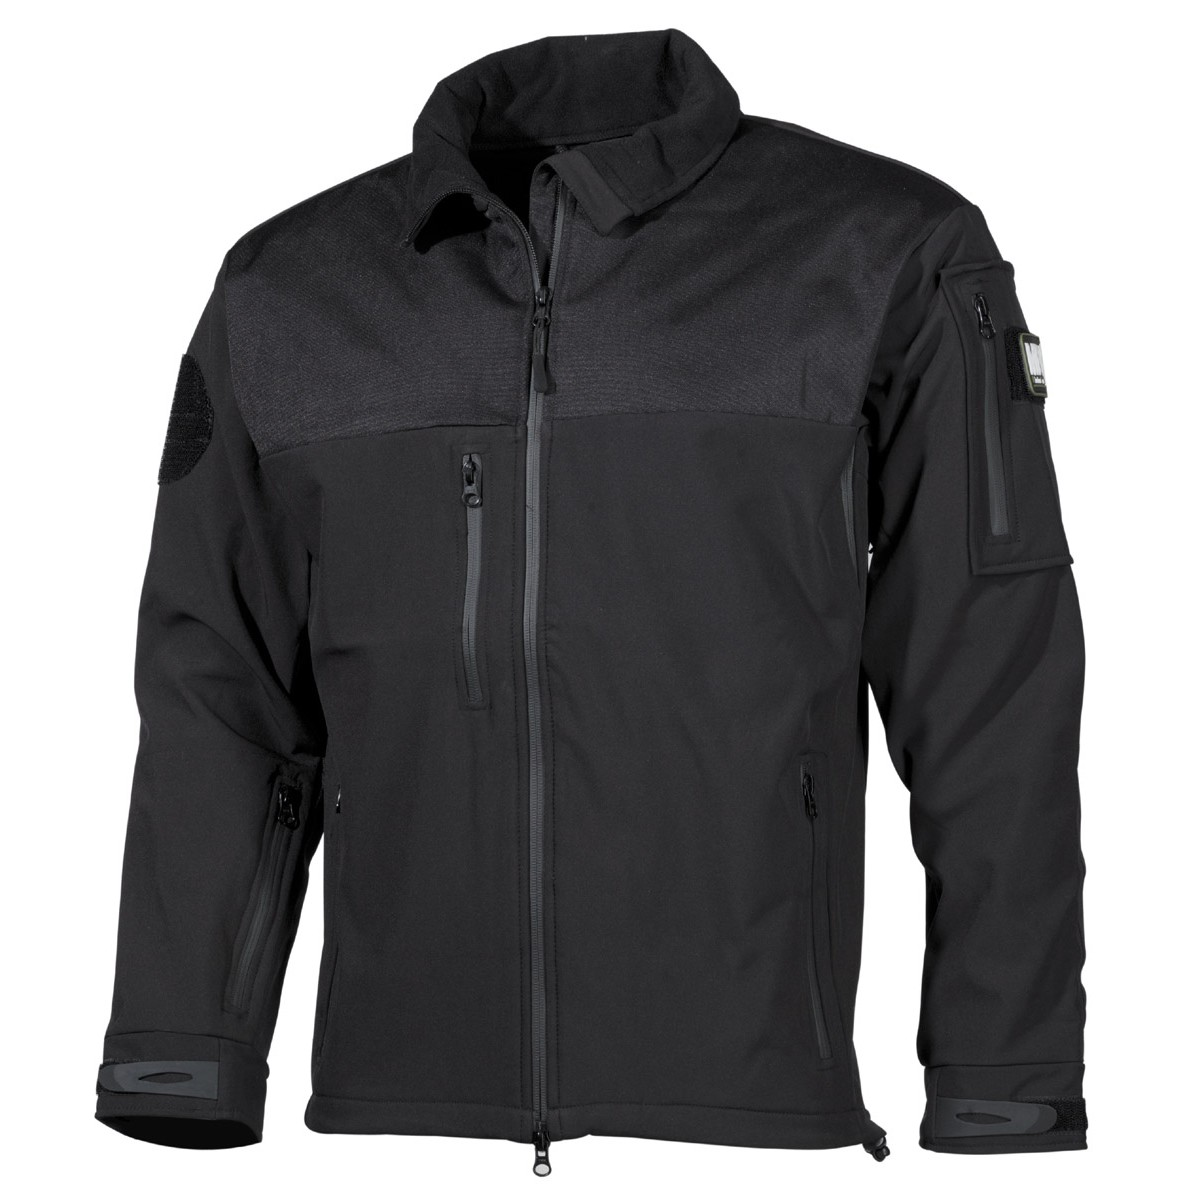 High Level Soft Shell Waterproof Jacket AUSTRALIA - Black